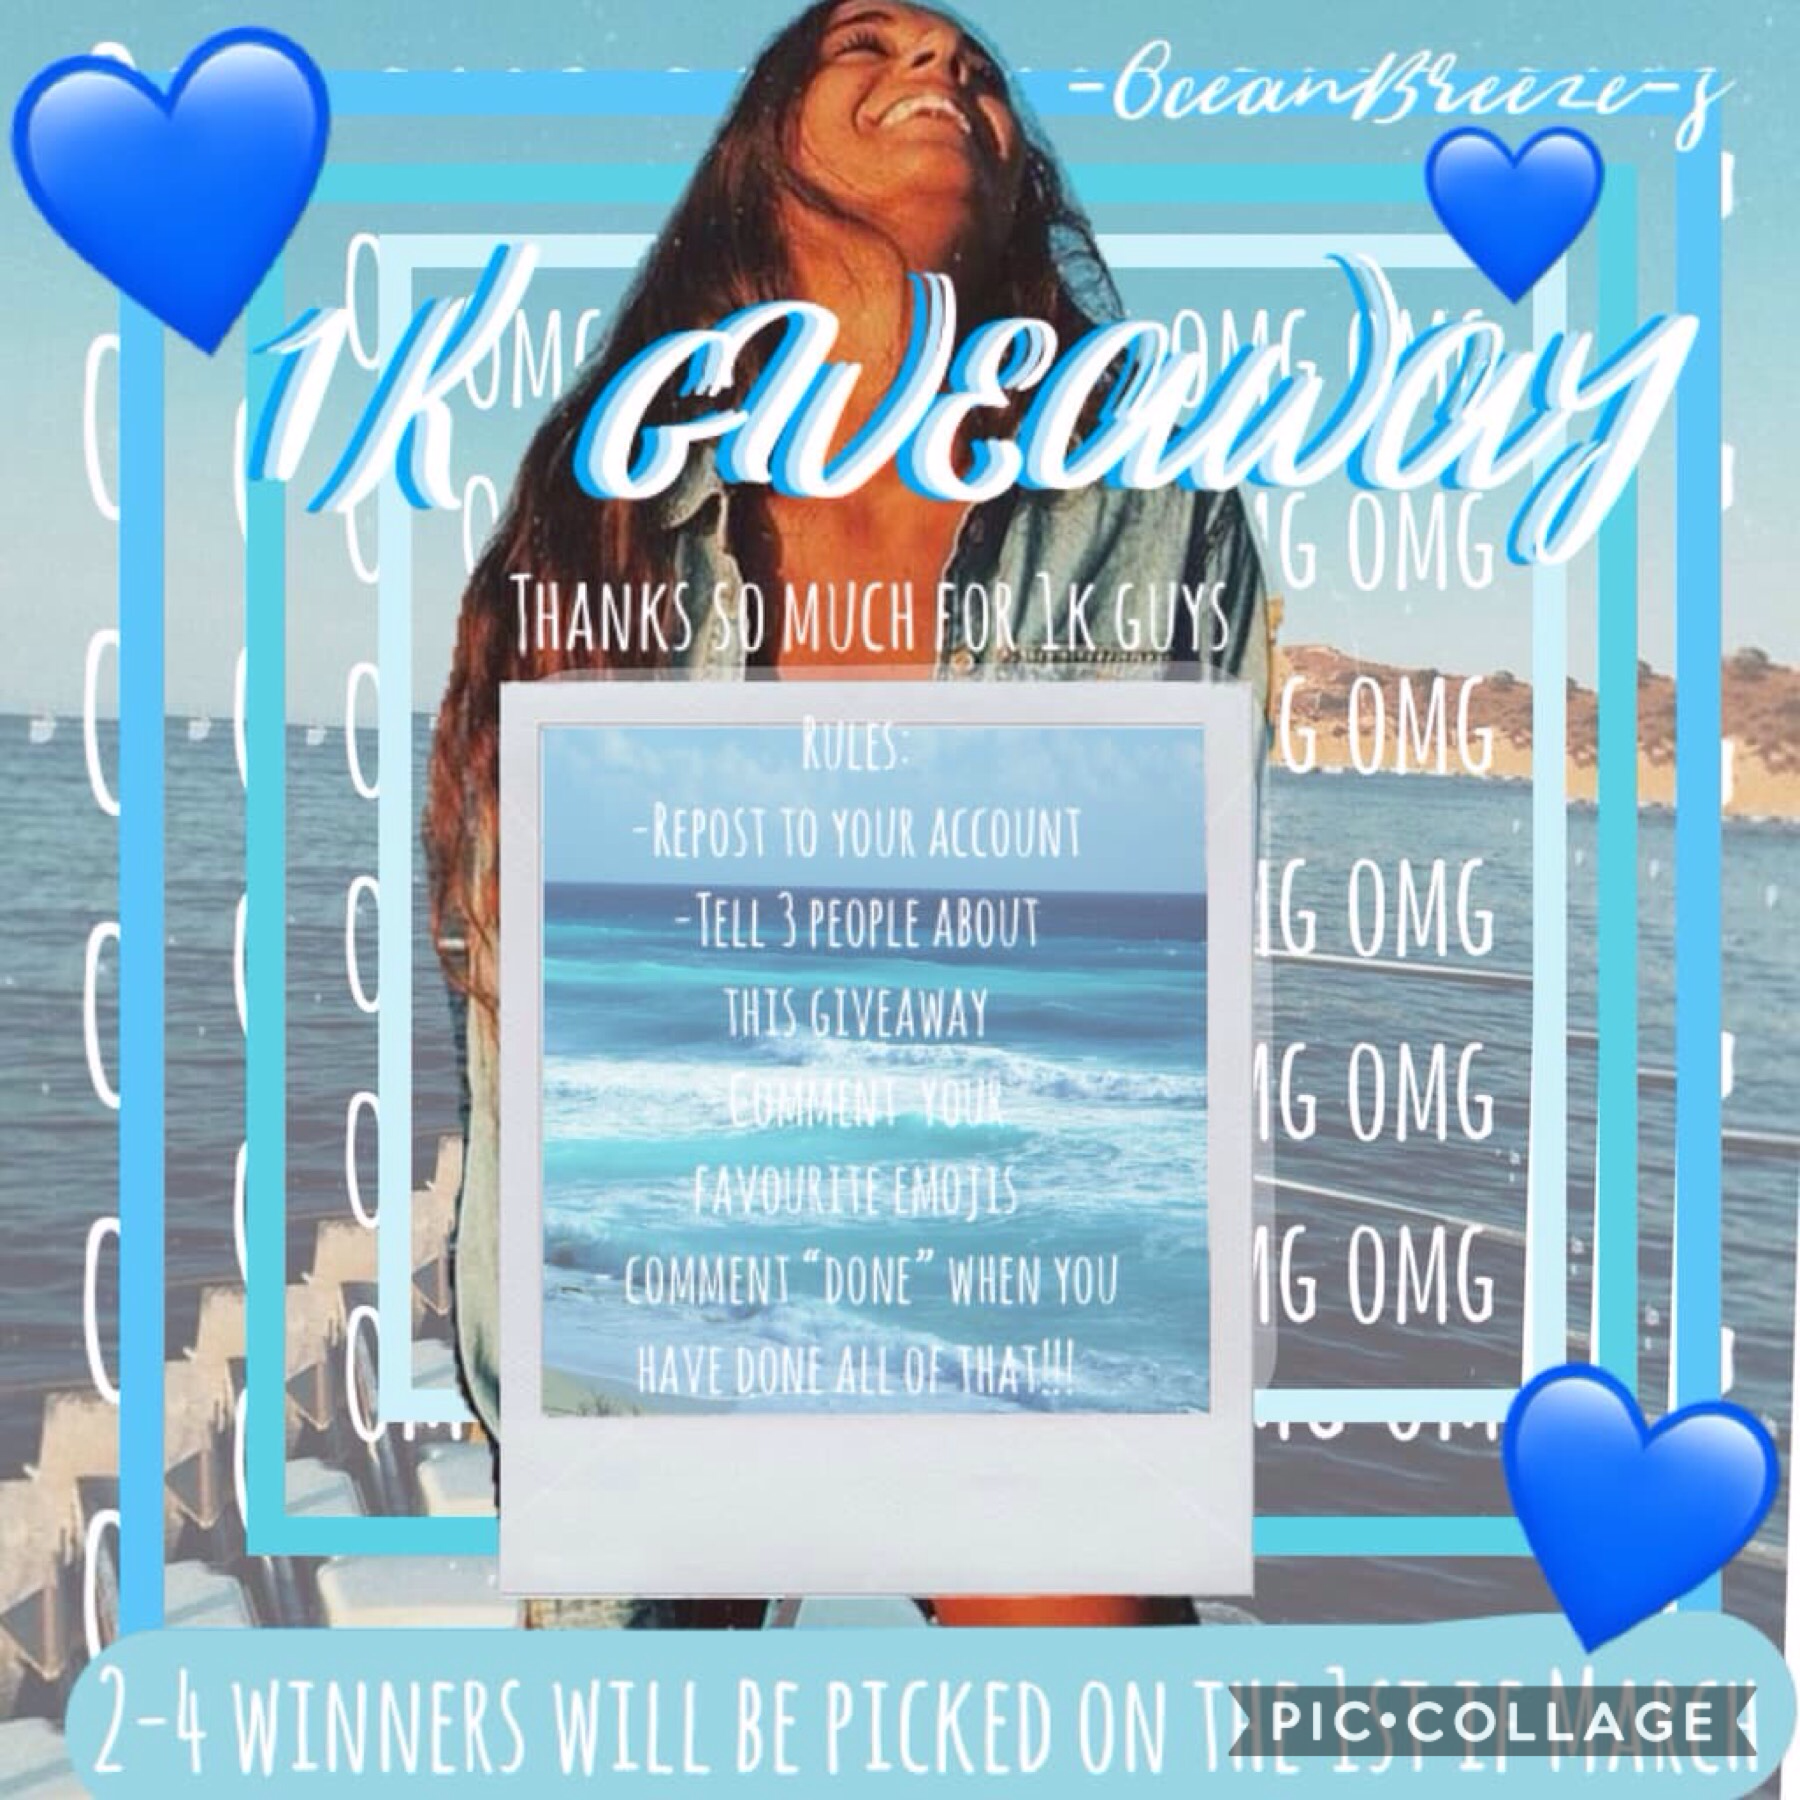 💙AHHHHHHHH CONGRATS MADDIE💙  Don't forget to enter my 1k giveaway!💜